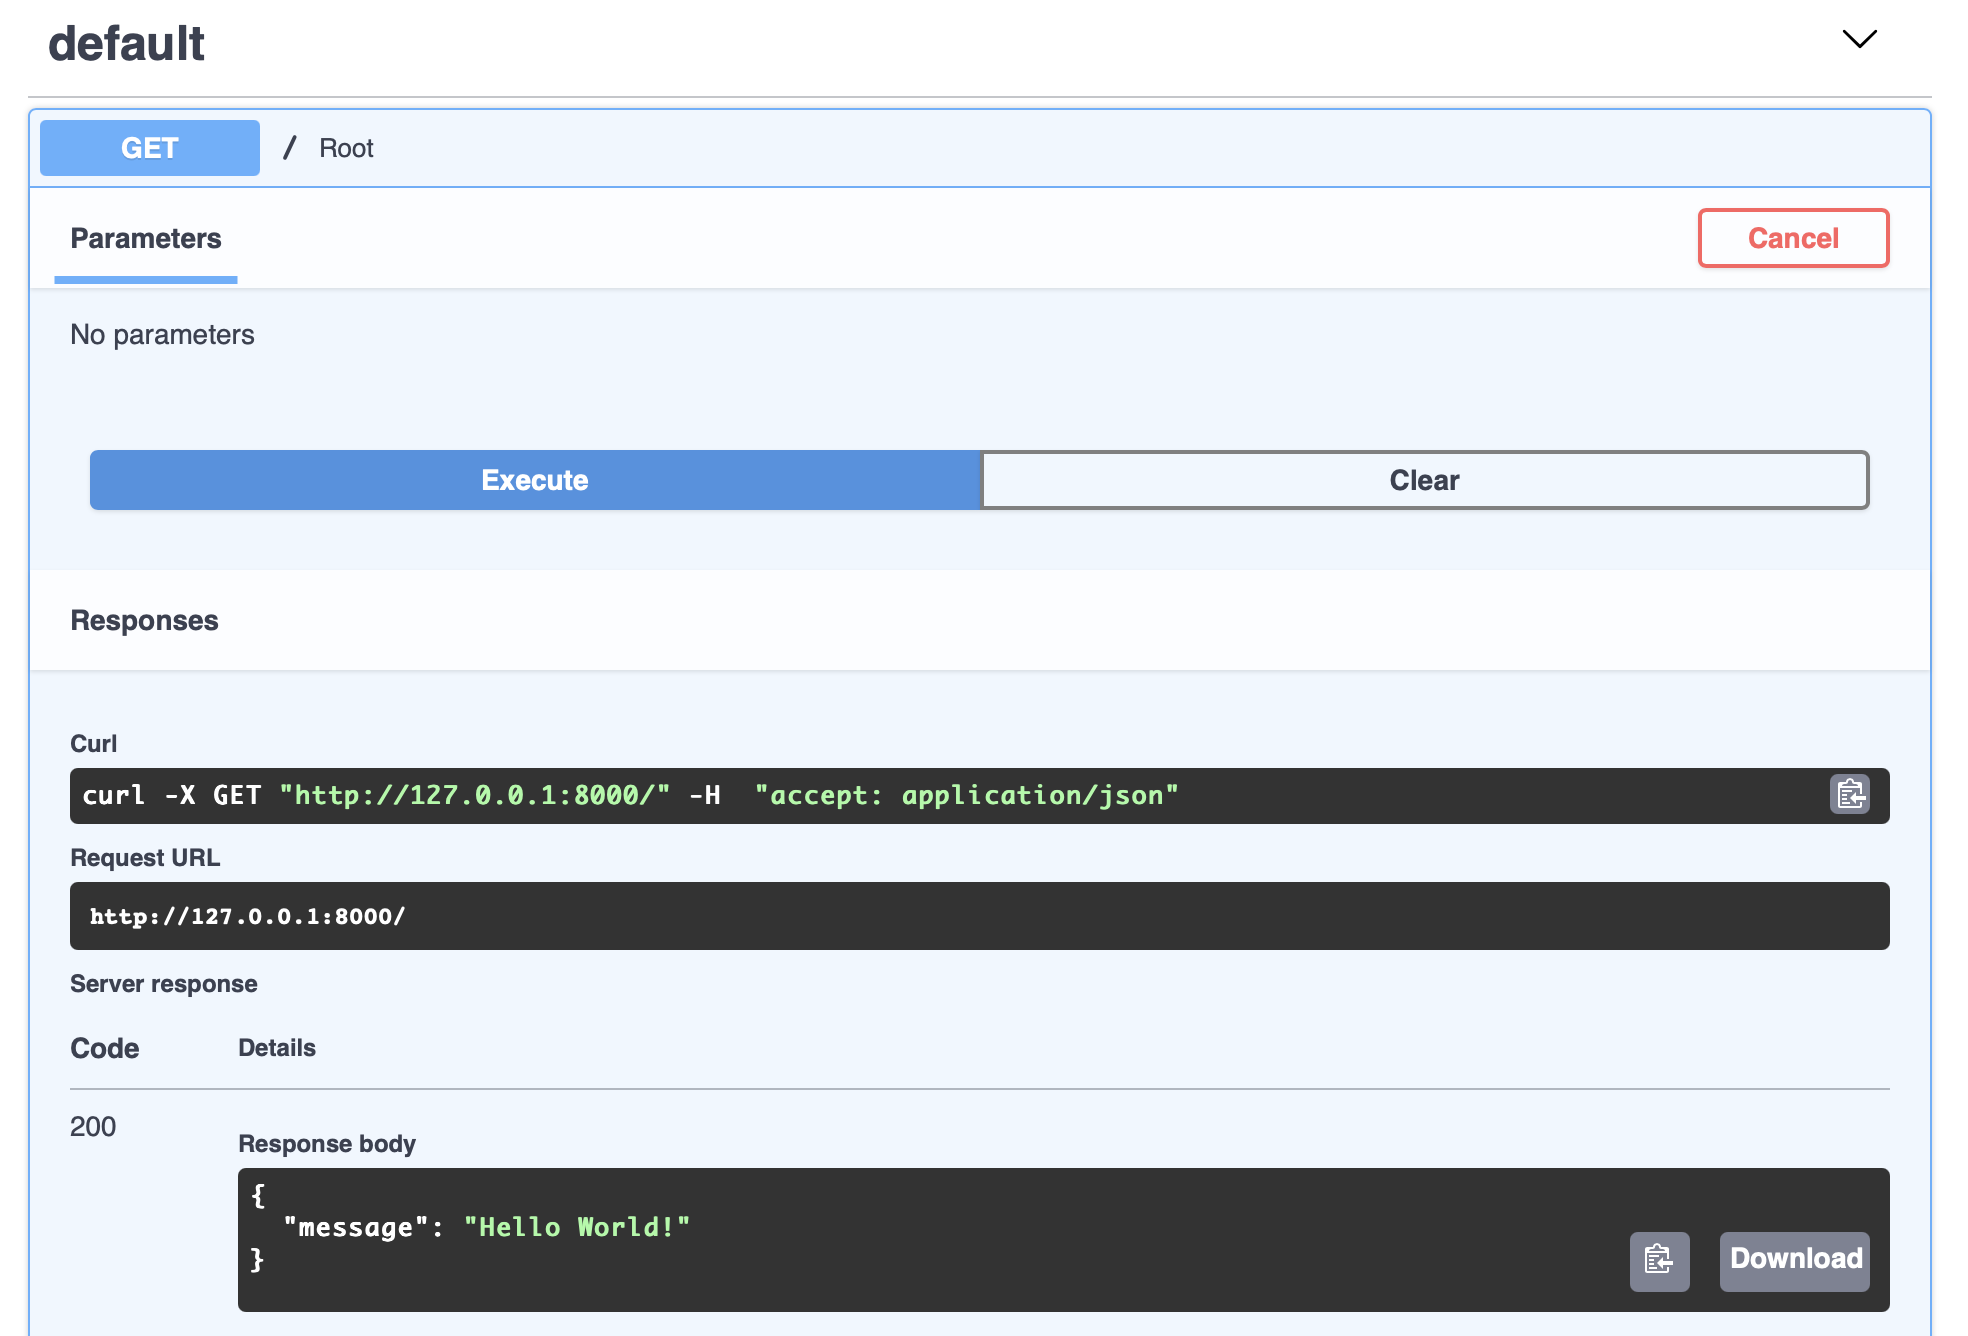 Landing page of the auto-generated API docs